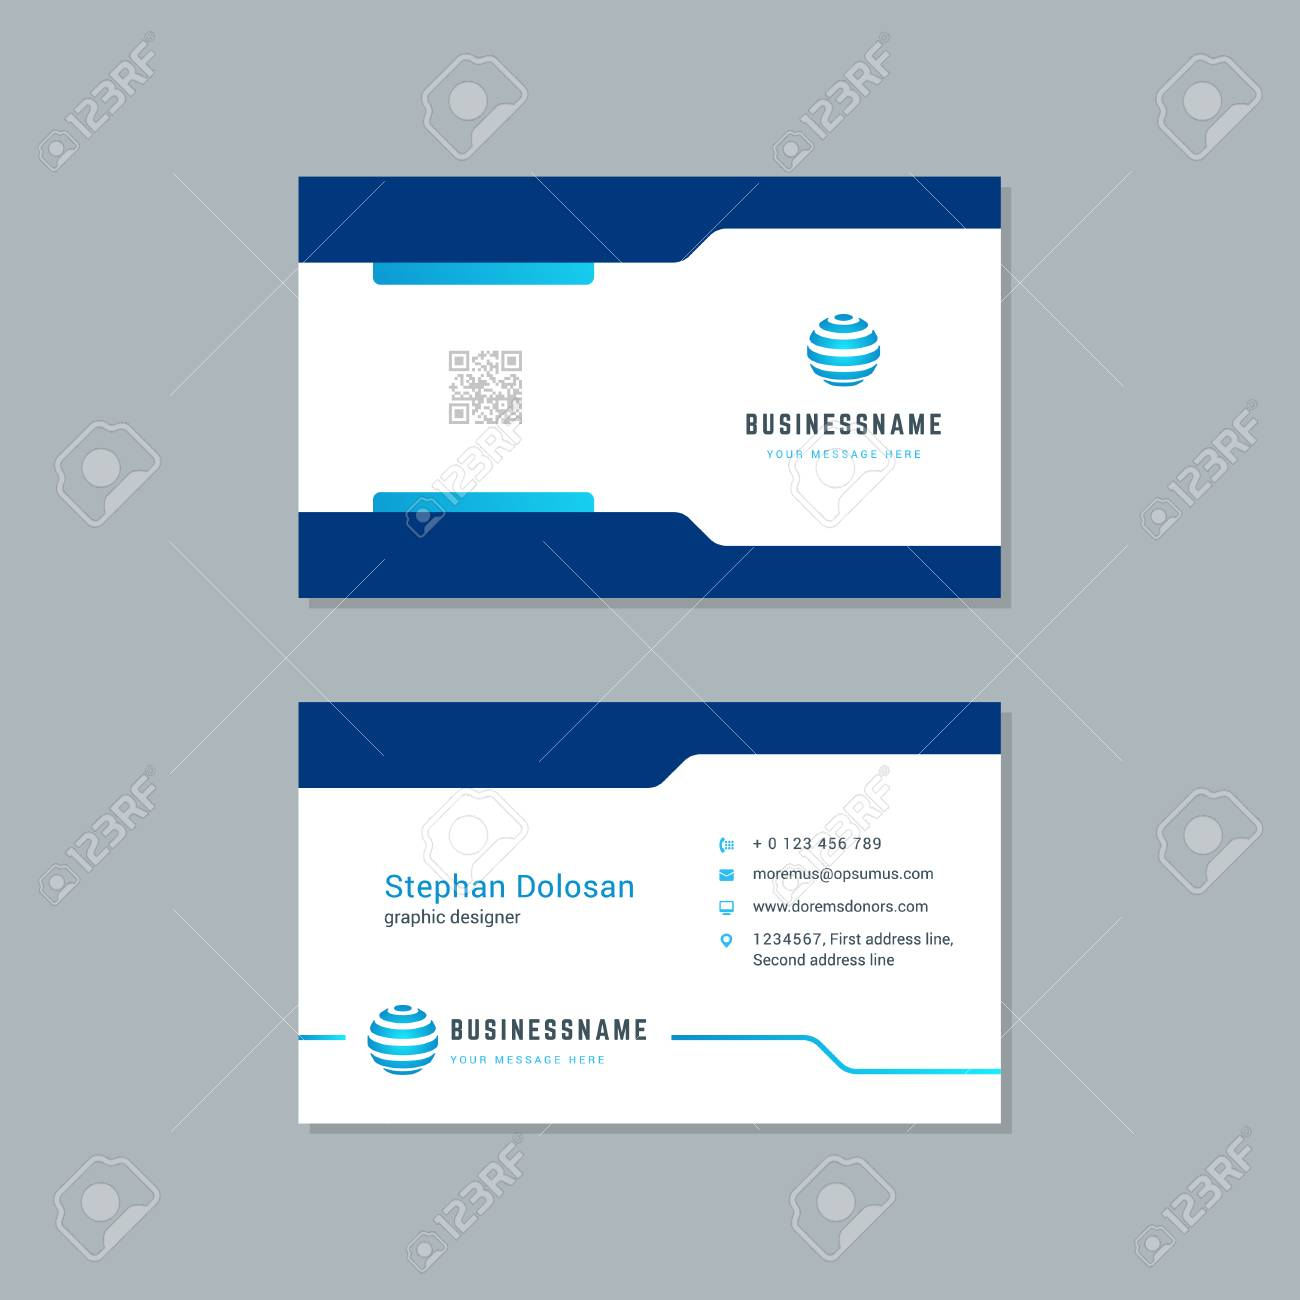 Business card design trendy blue colors template modern corporate business card design trendy blue colors template modern corporate branding style vector illustration two sides colourmoves